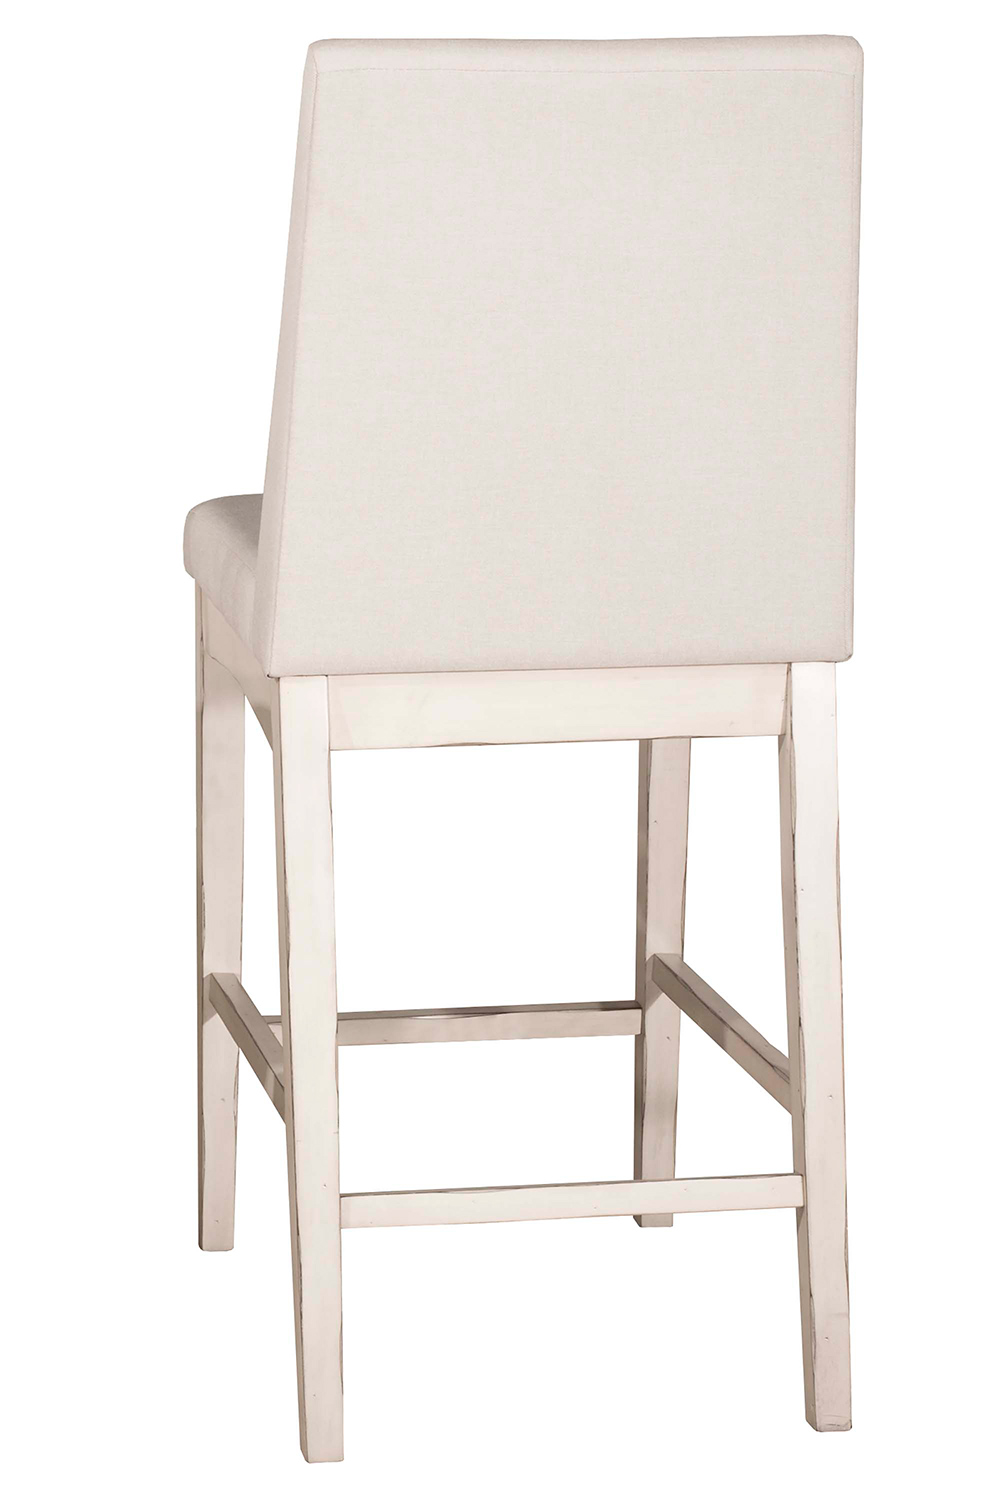 Hillsdale Clarion Non-Swivel Counter Height Stool - Sea White - Fog Fabric